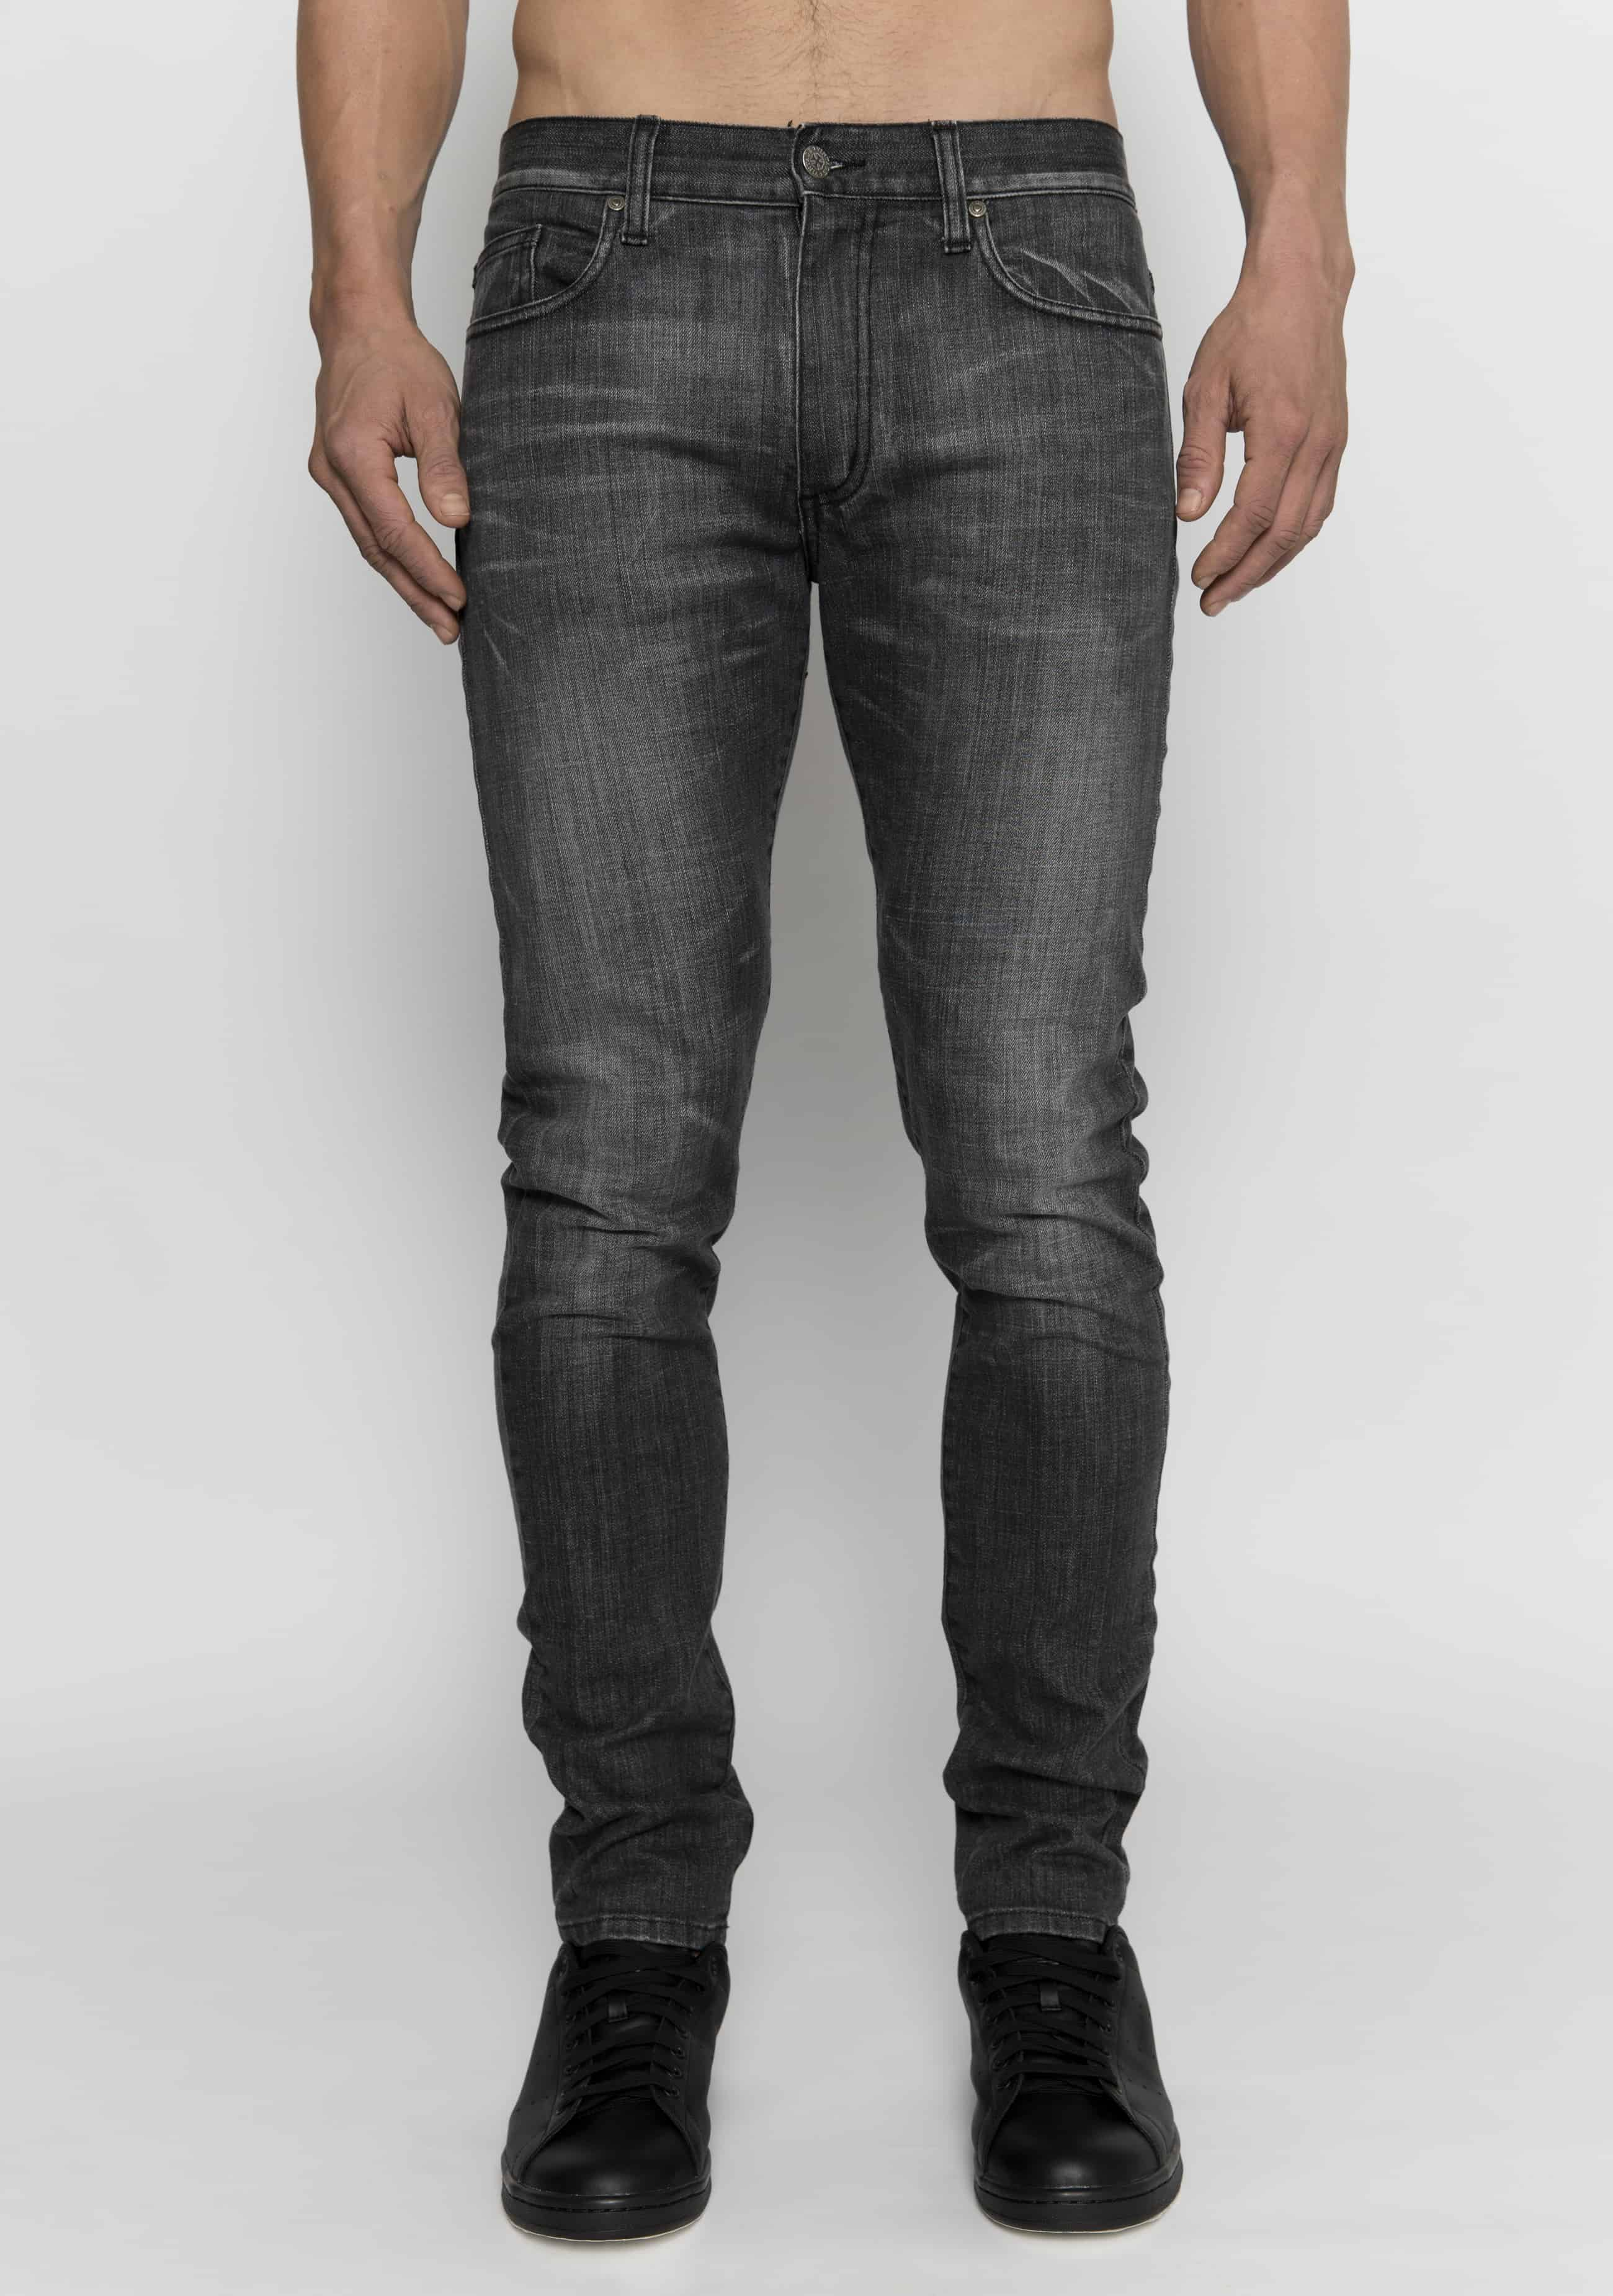 VANN Jean – Washed Grey